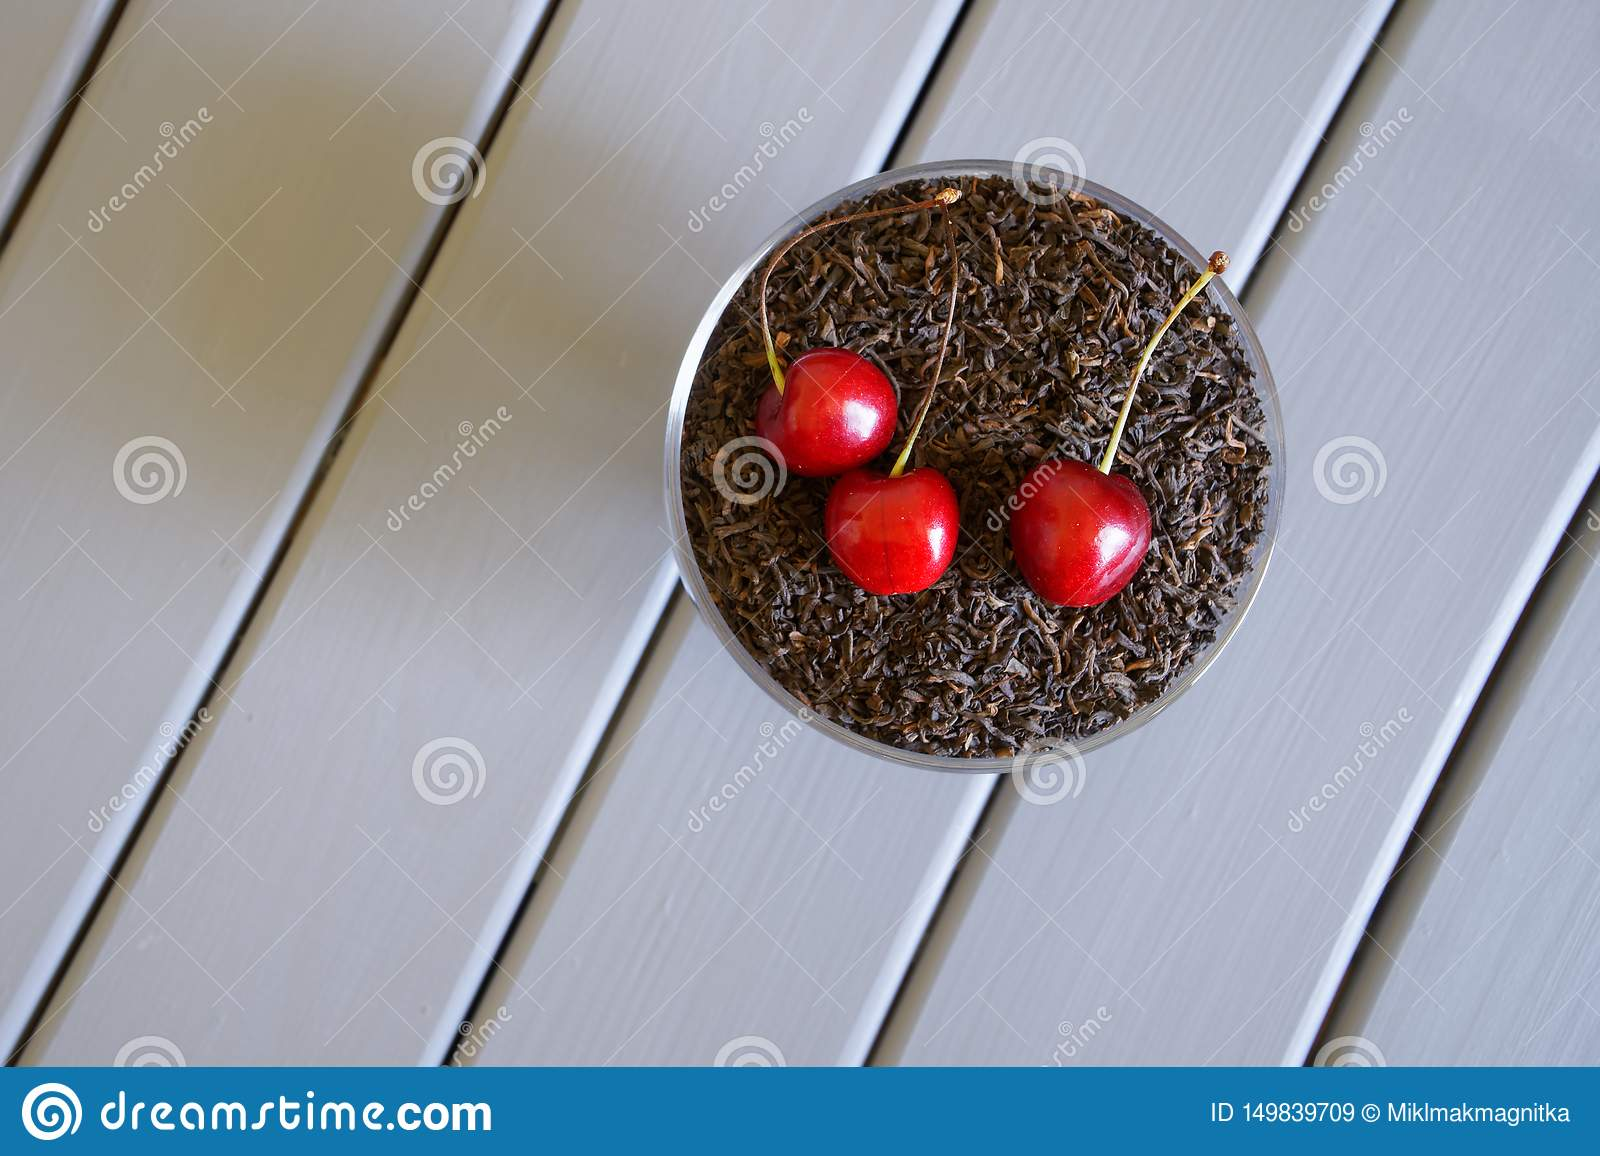 Traditional black tea with red cherries on a light background. Fruit flavor favorite drink